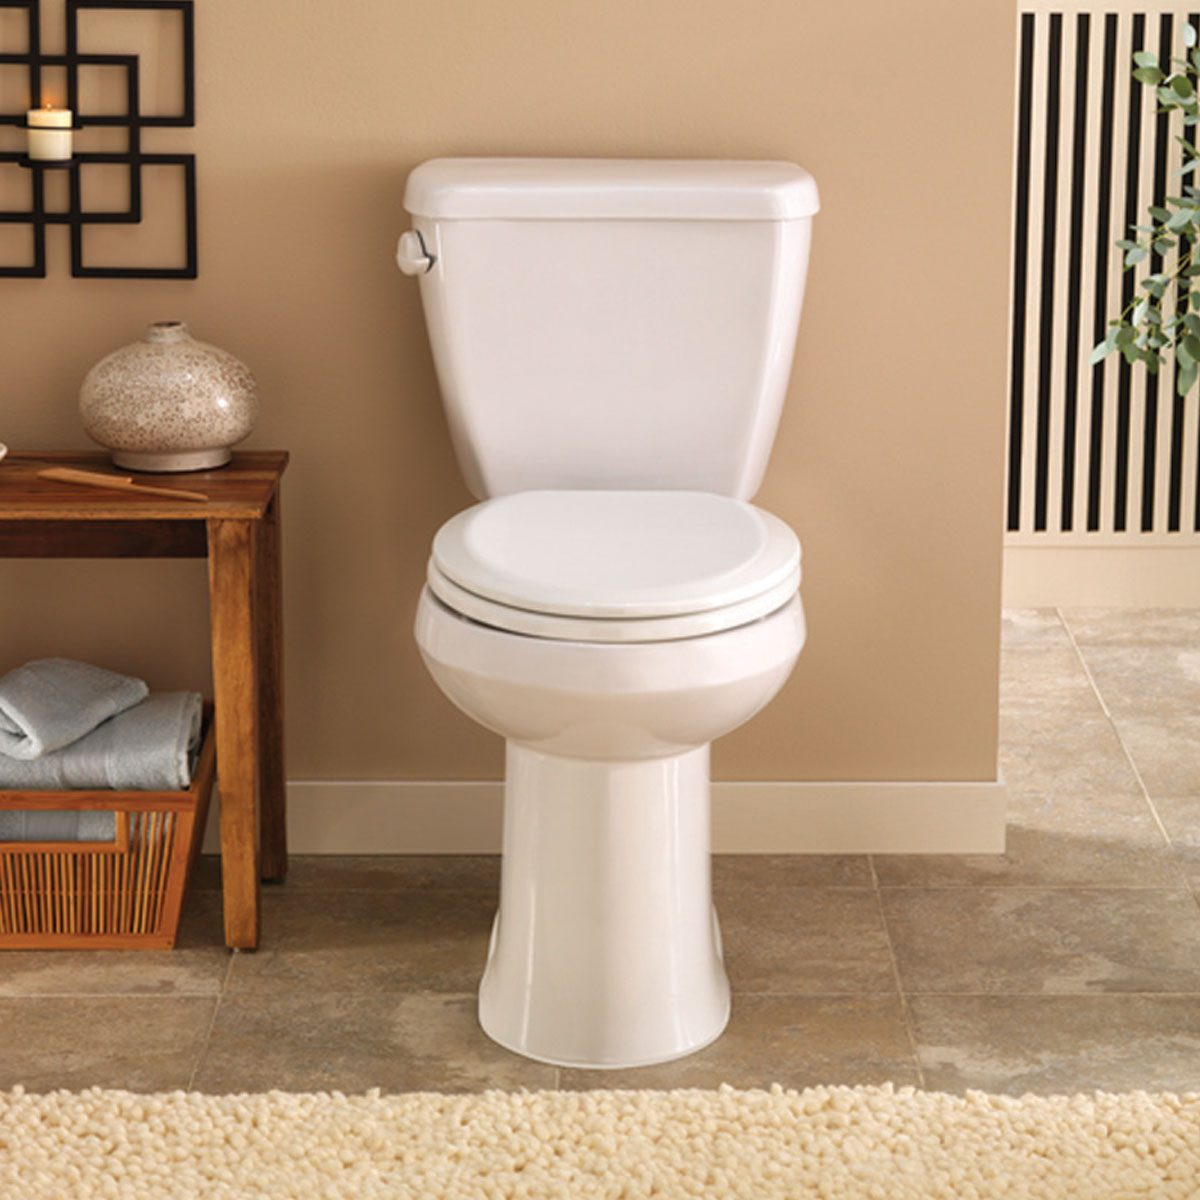 Gerber Avalanche toilet